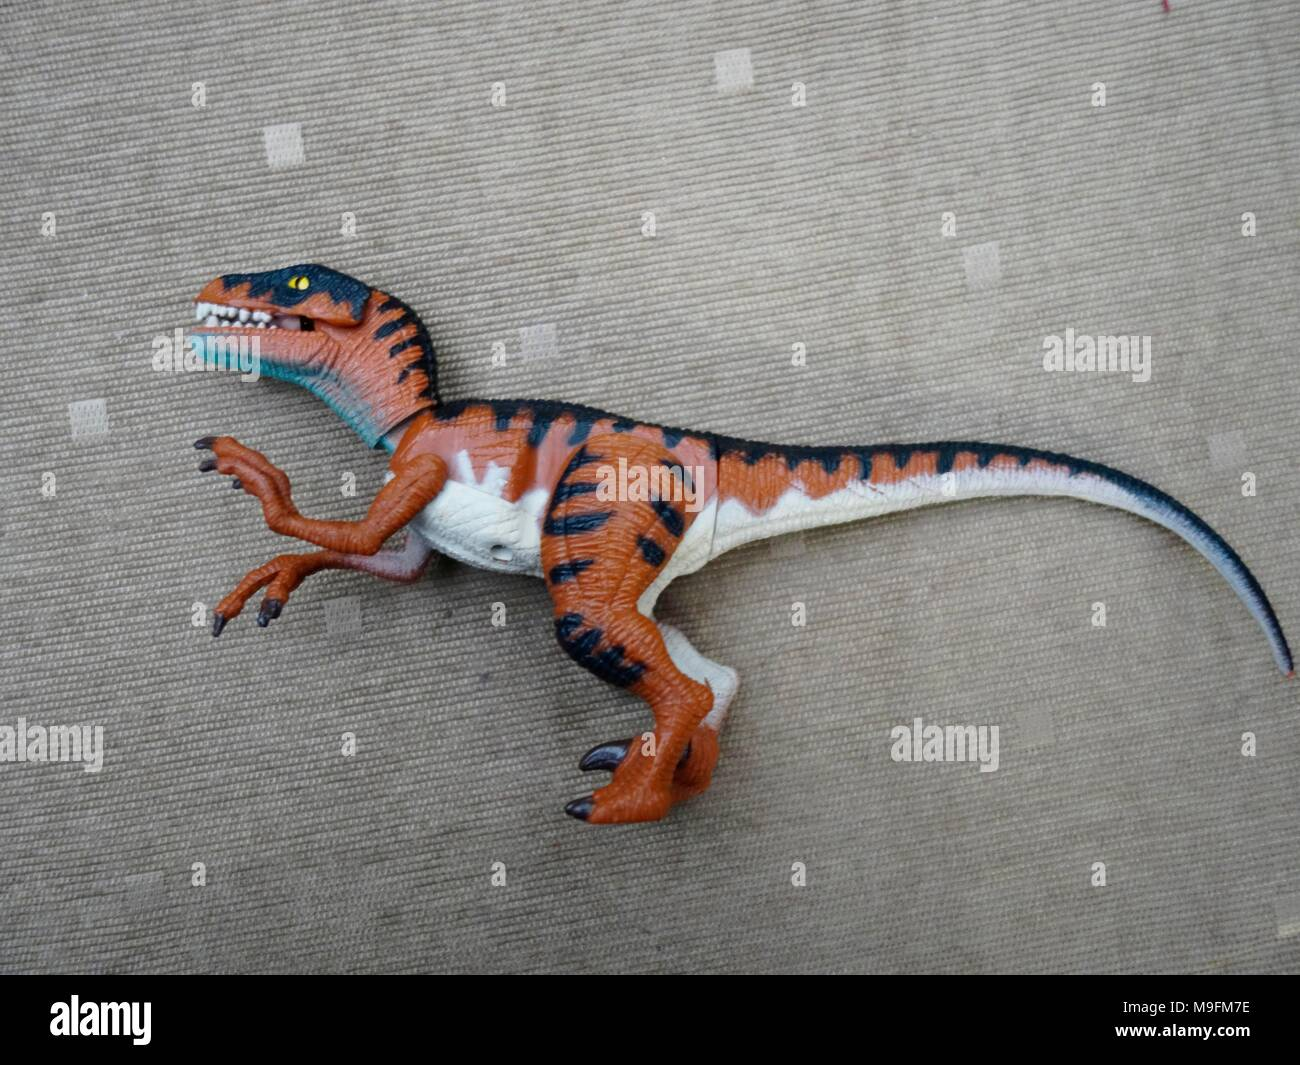 Jurassic Park 90s action figure by kenner - Stock Image